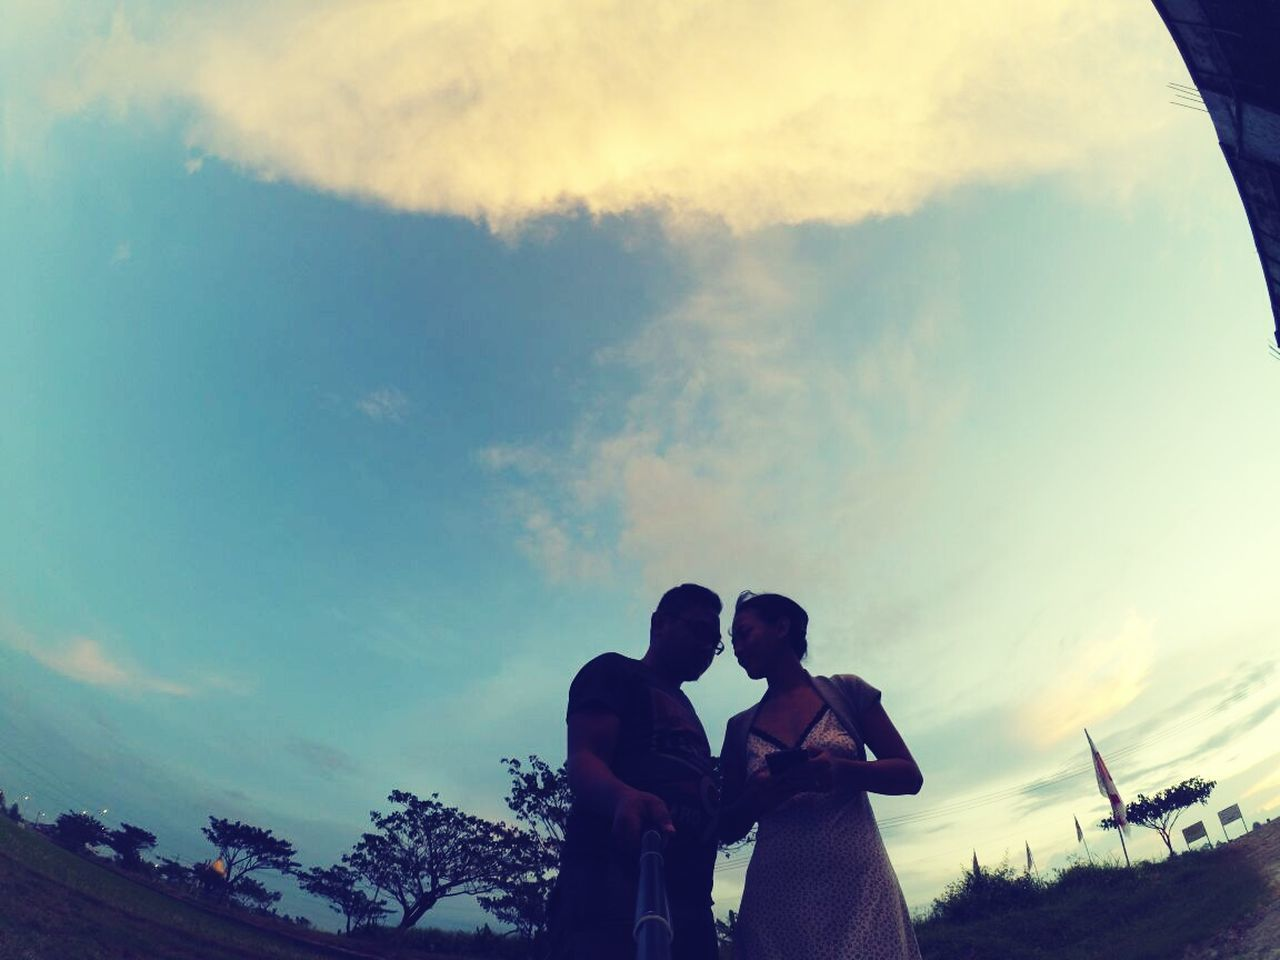 sky, real people, two people, love, togetherness, cloud - sky, bonding, lifestyles, low angle view, men, leisure activity, selfie, outdoors, communication, silhouette, women, nature, photographing, tree, sunset, technology, standing, photography themes, friendship, wireless technology, beauty in nature, day, people